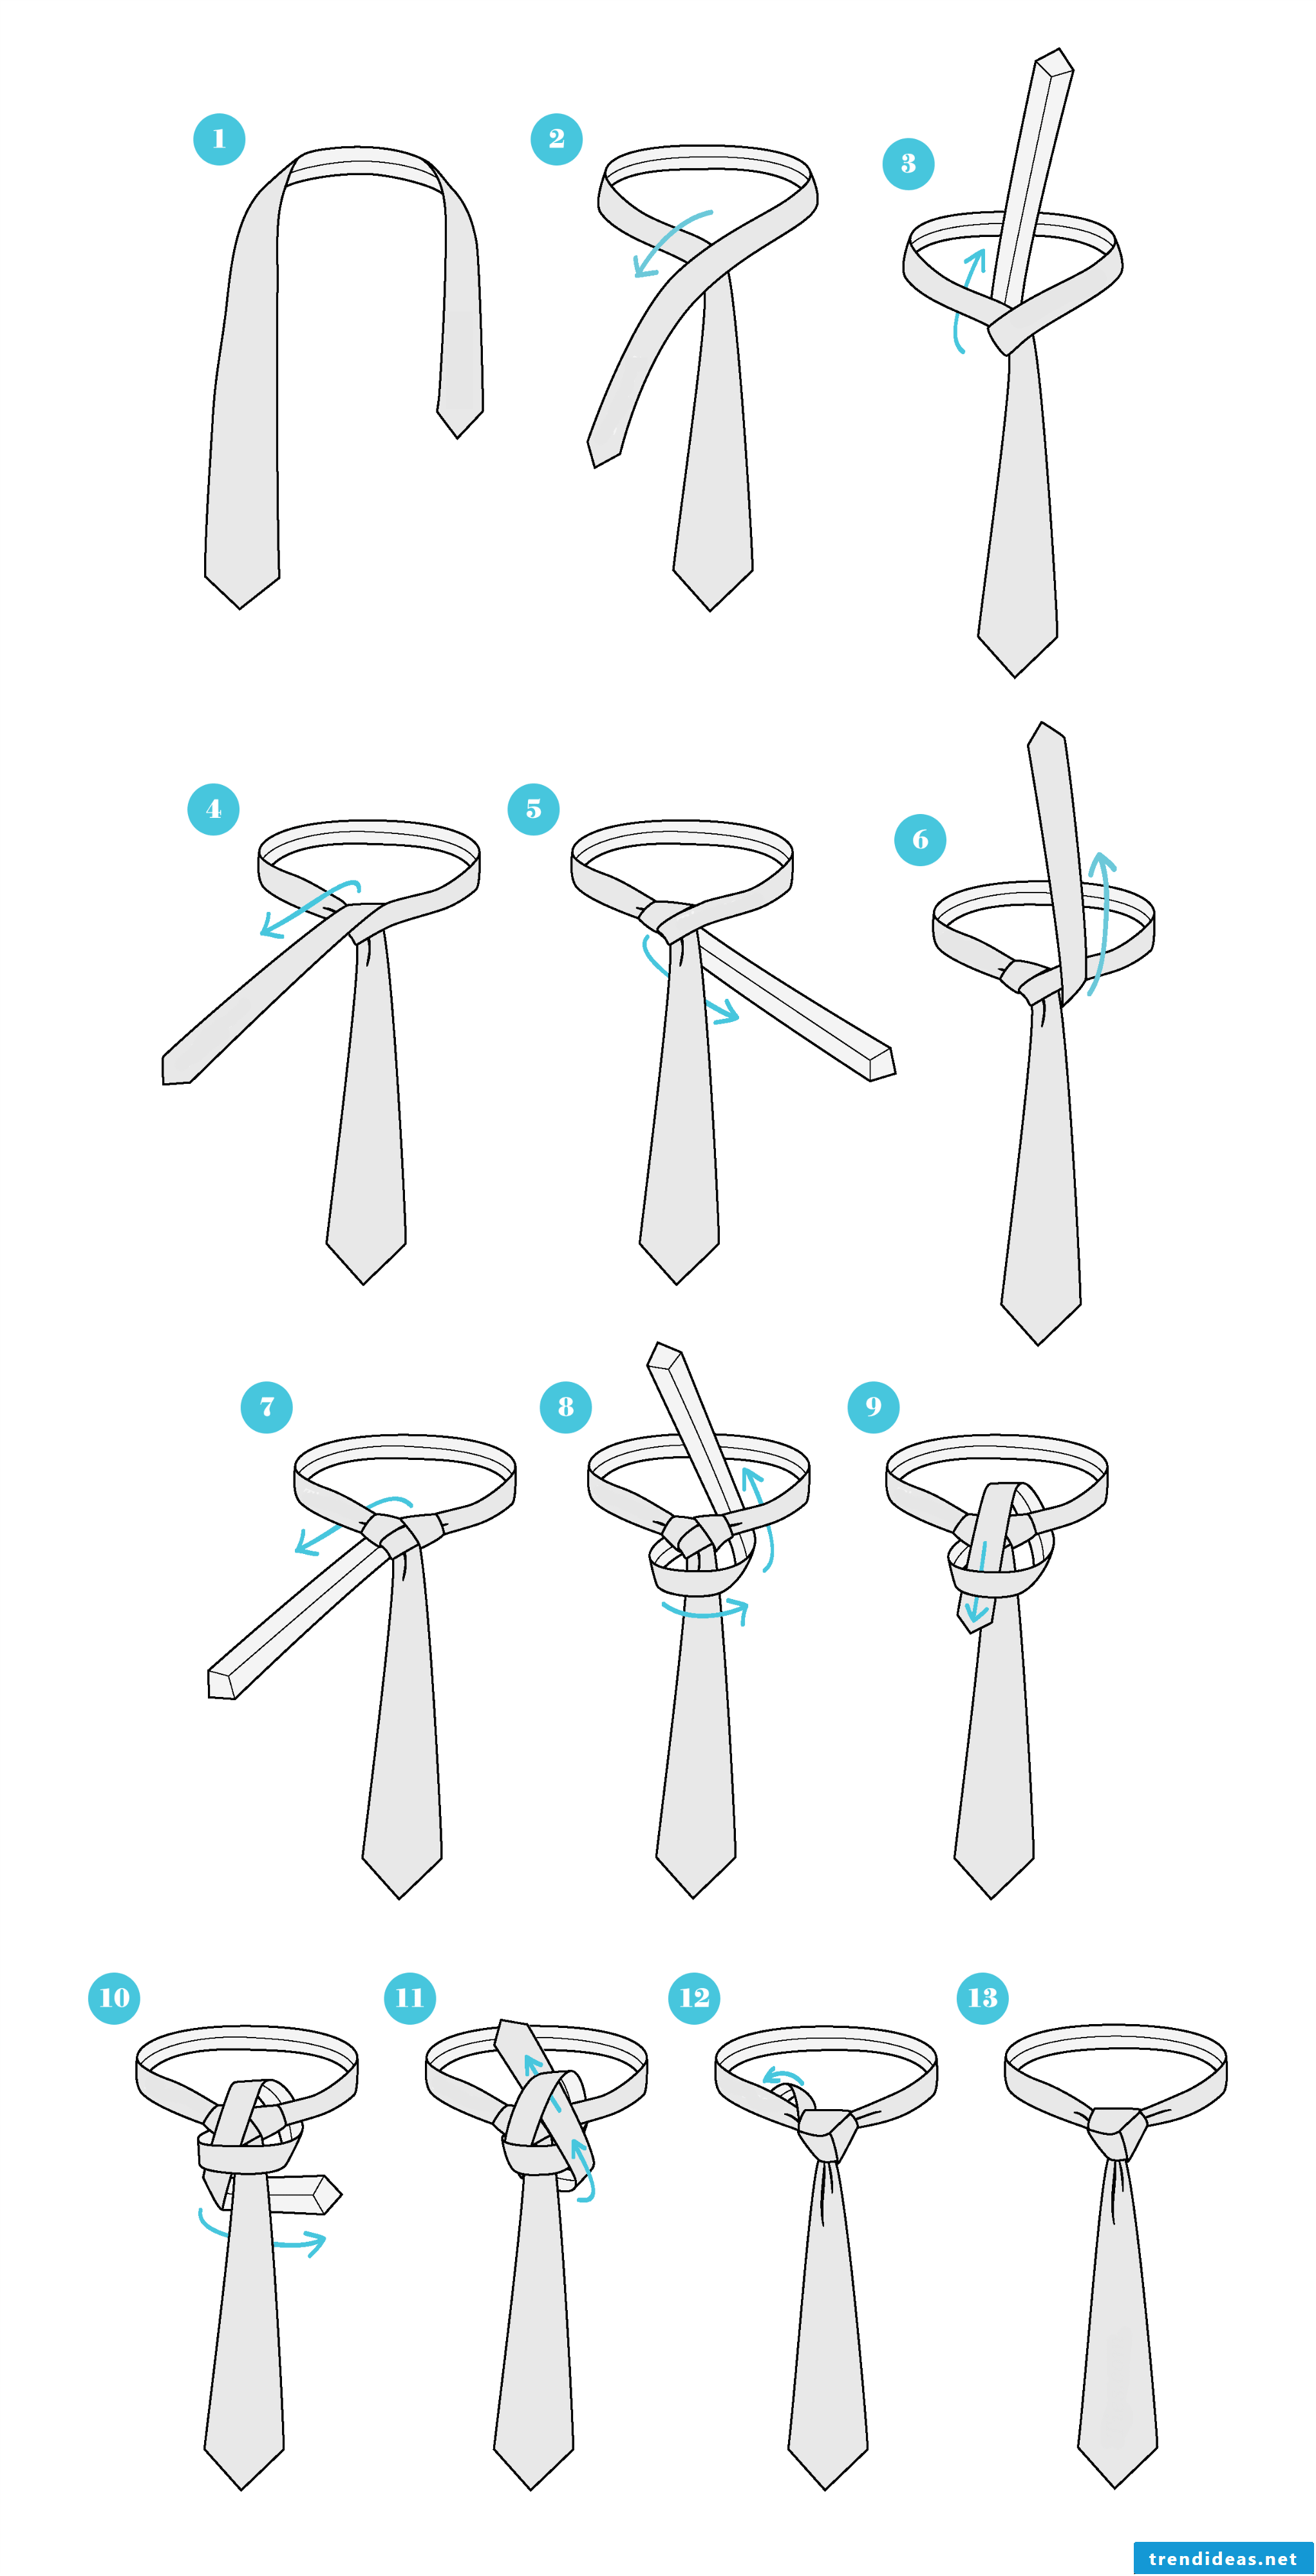 How do I tie a tie with Trinity knots?